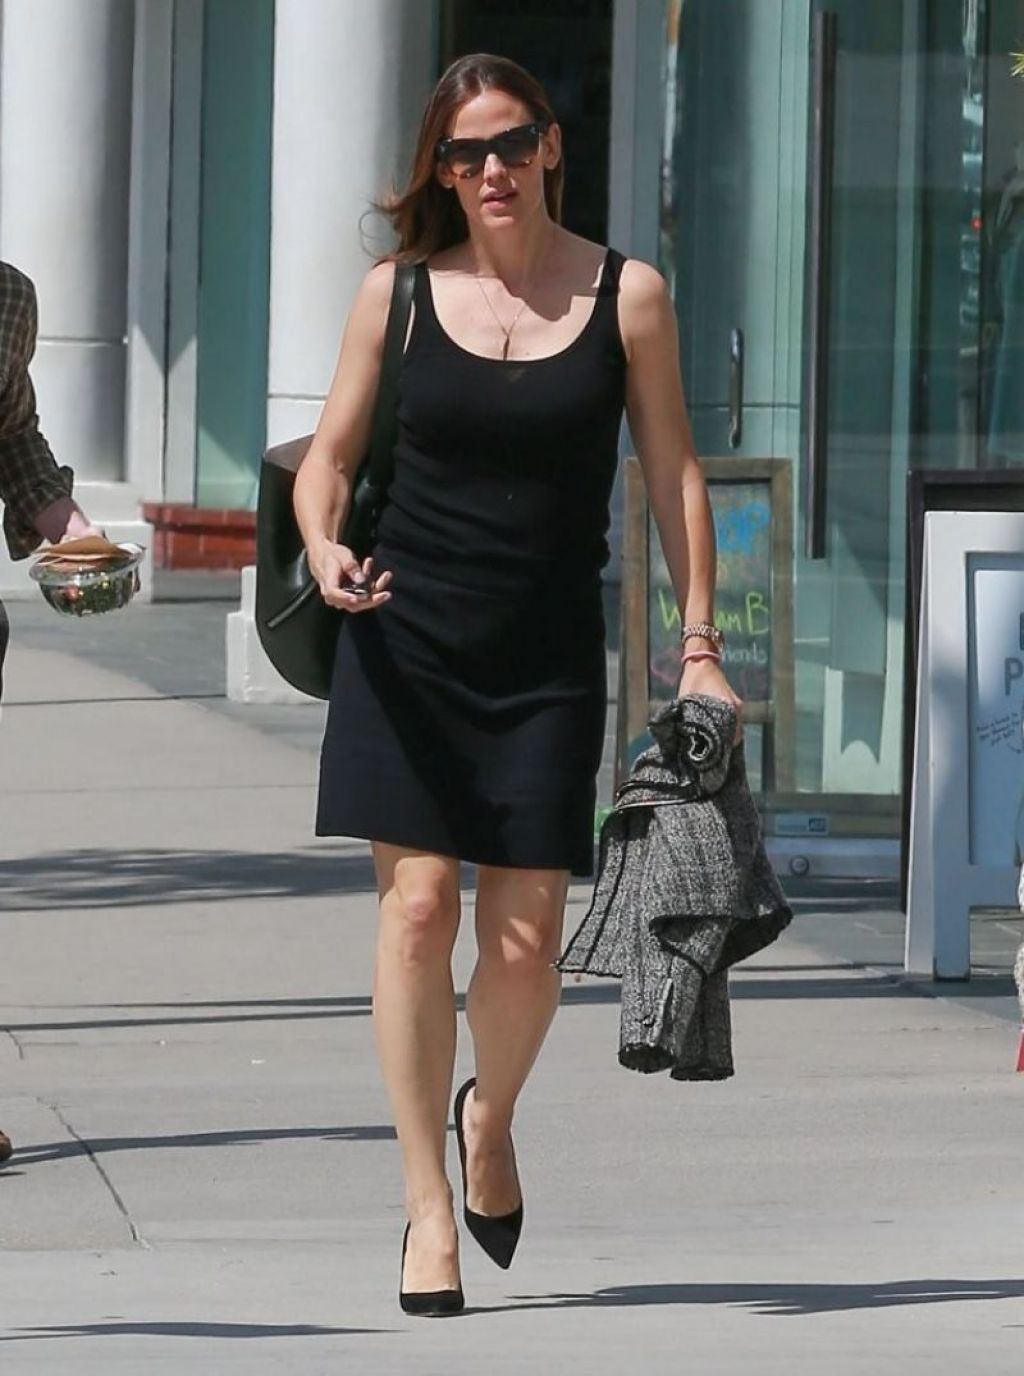 Jennifer garner in black mini skirt brentwood nude (83 photo), Tits Celebrity pic